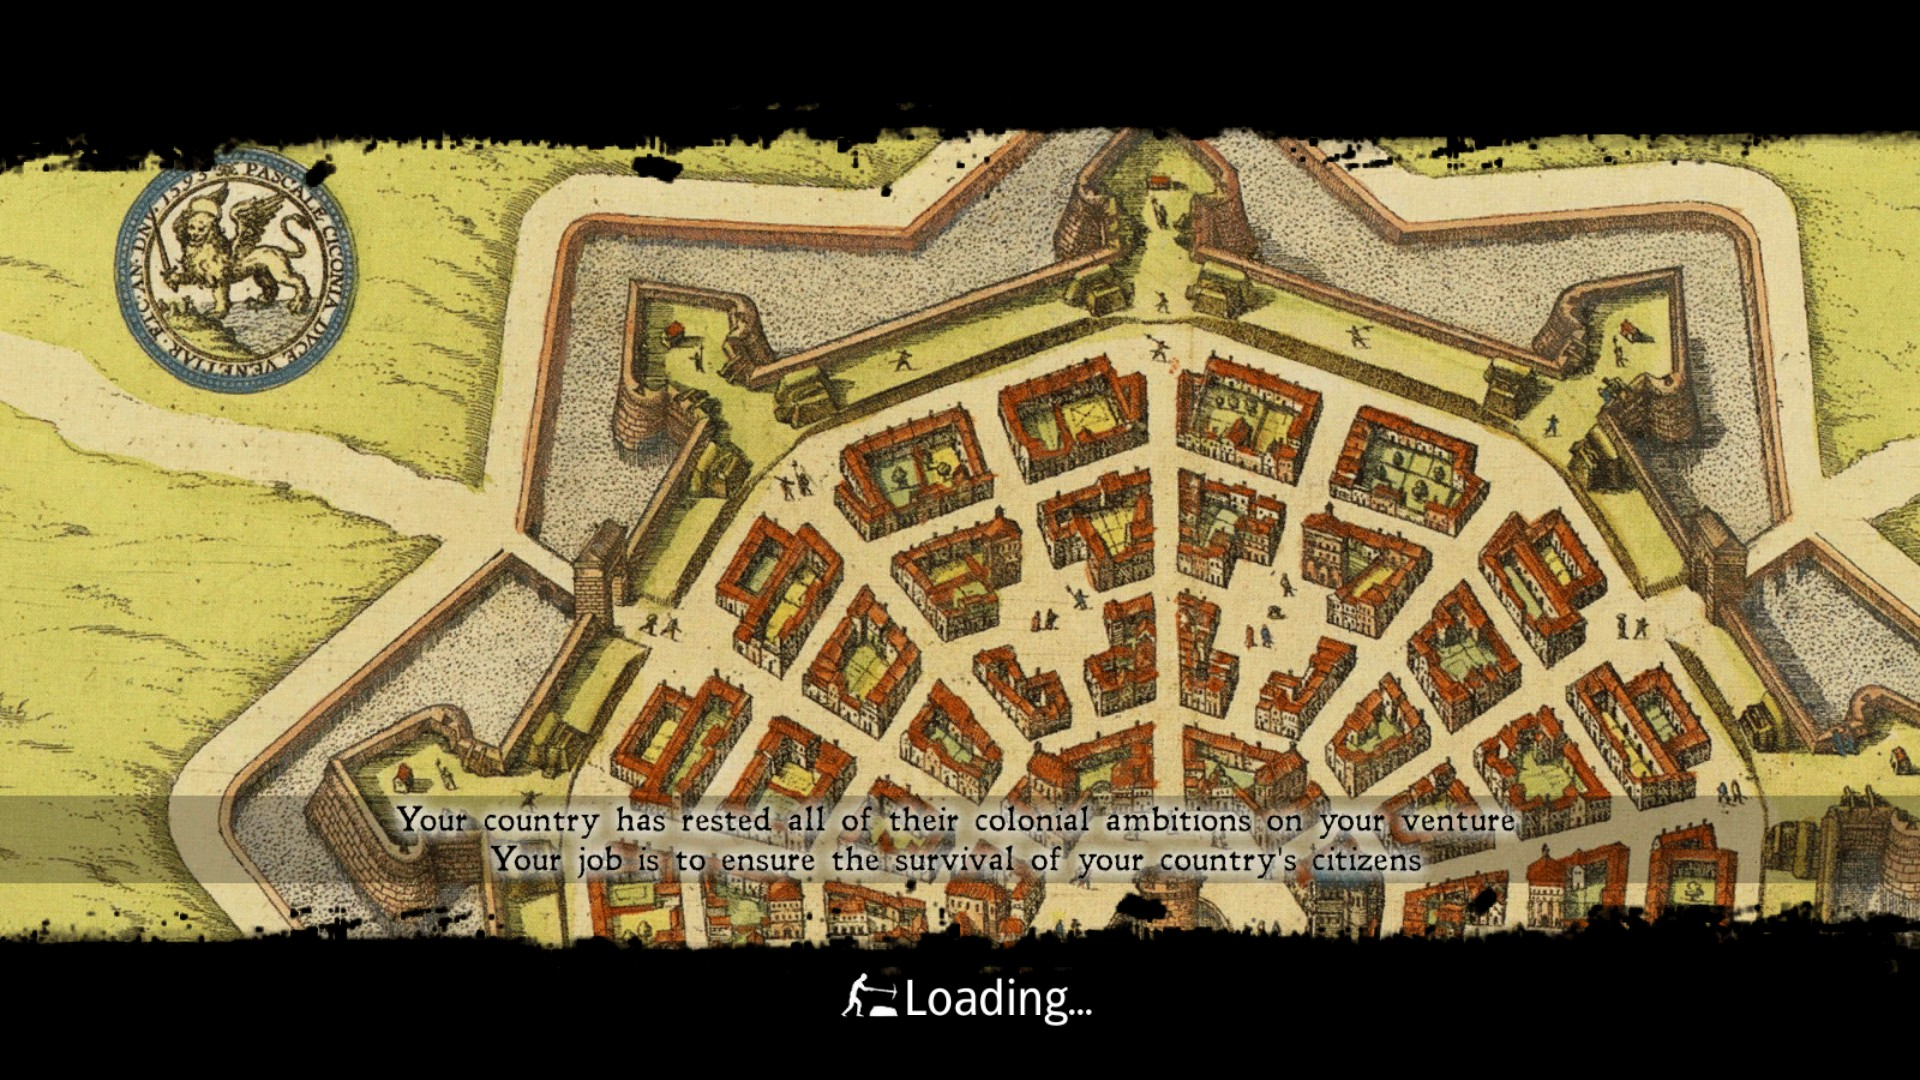 Once a town plan, now a loading screen.